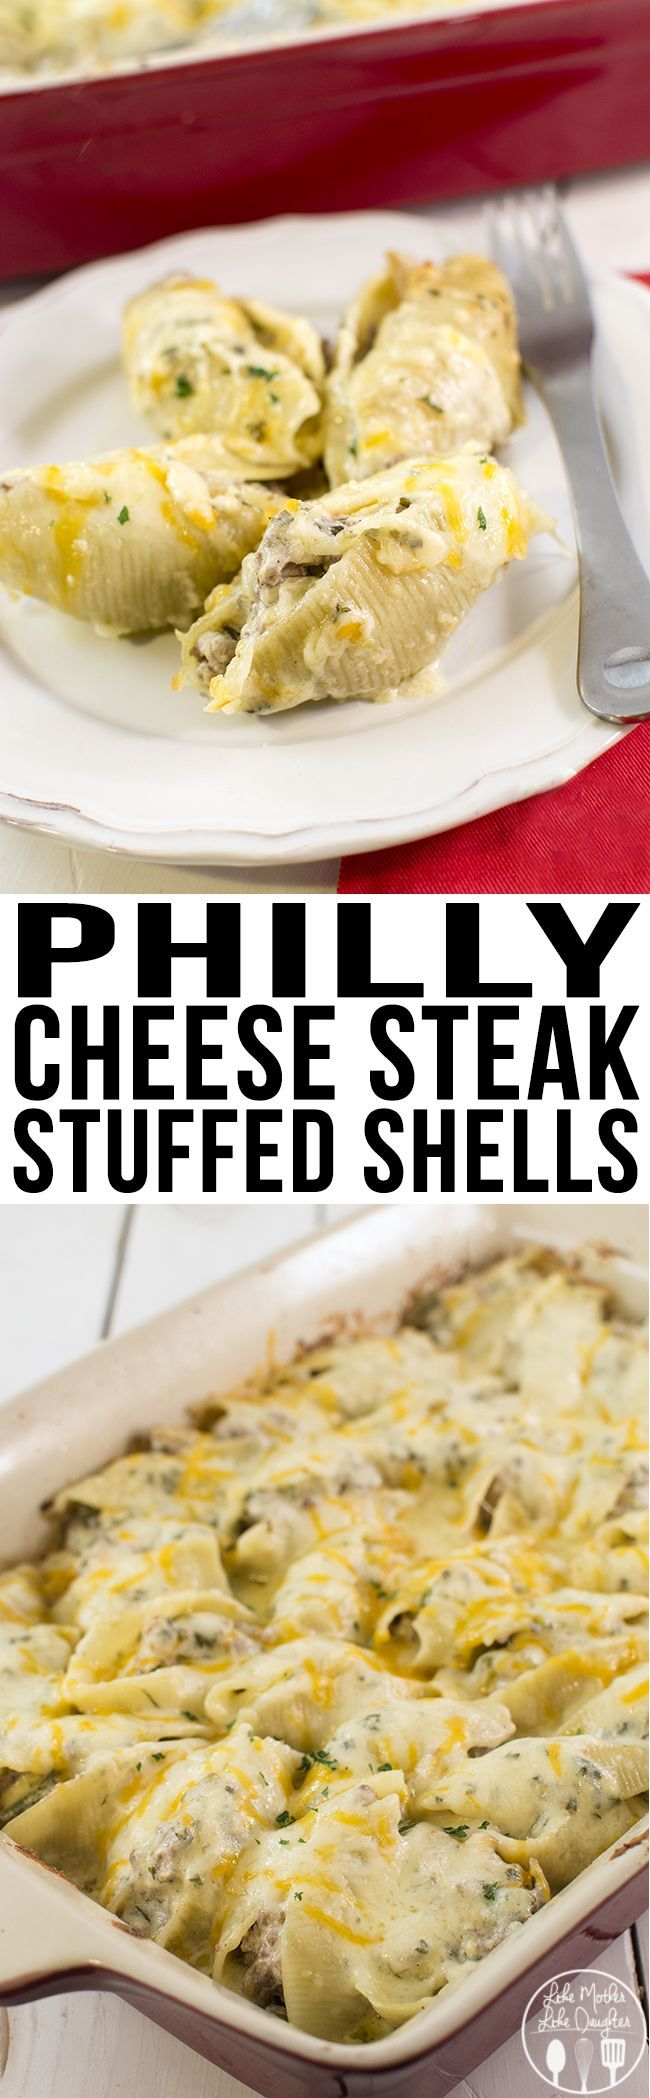 Philly Cheese Steak Stuffed Shells - These stuffed shells have the great taste of a philly cheese steak sandwich mixed with a creamy and cheesy sauce and stuffed inside of these shells!